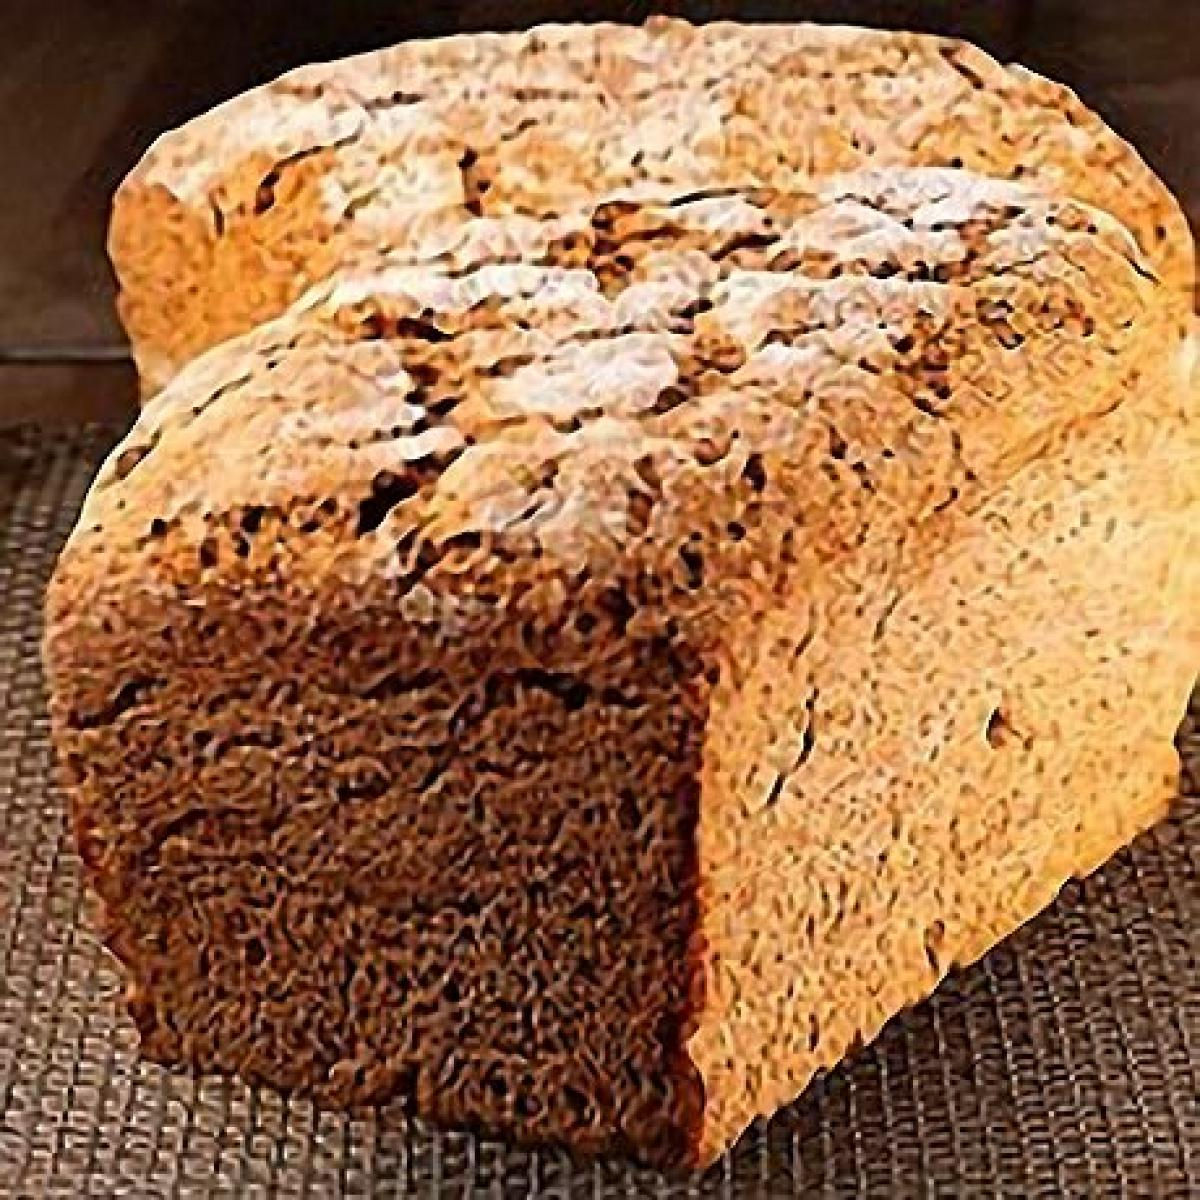 Ma035 wholemeal bread 18630